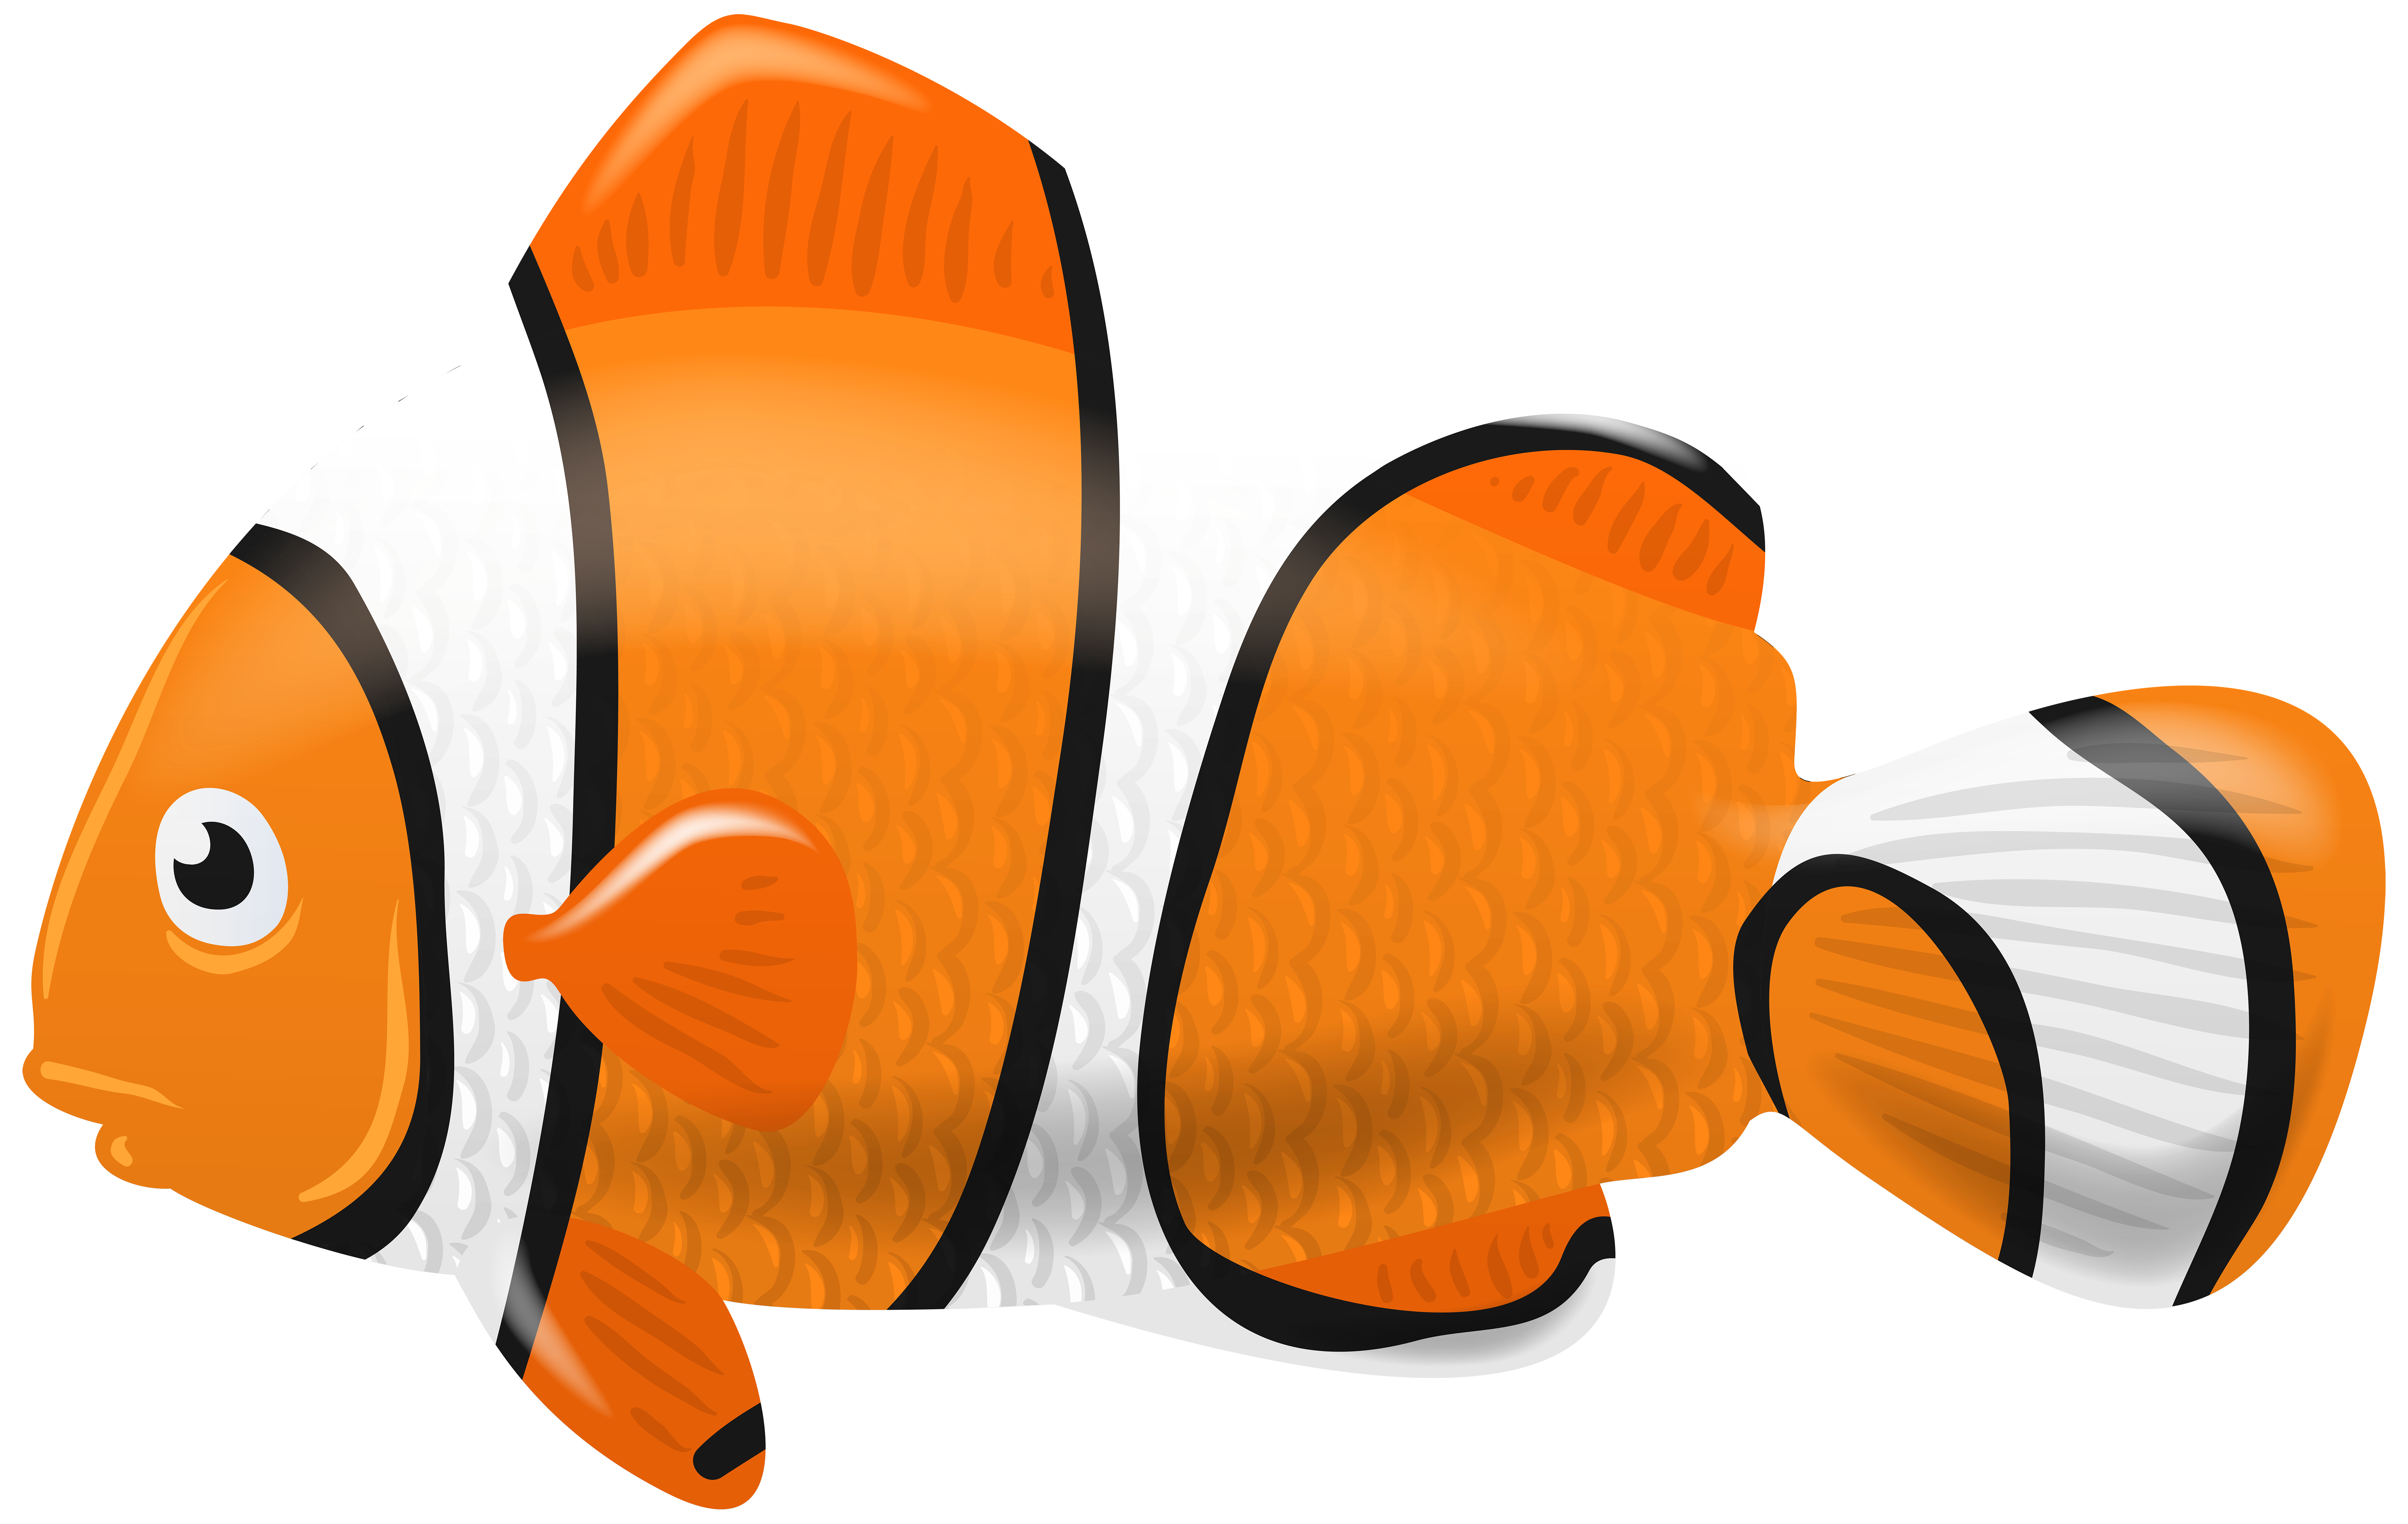 Clipart fish png banner library download Fish Clown PNG Clip Art Image | Gallery Yopriceville - High-Quality ... banner library download